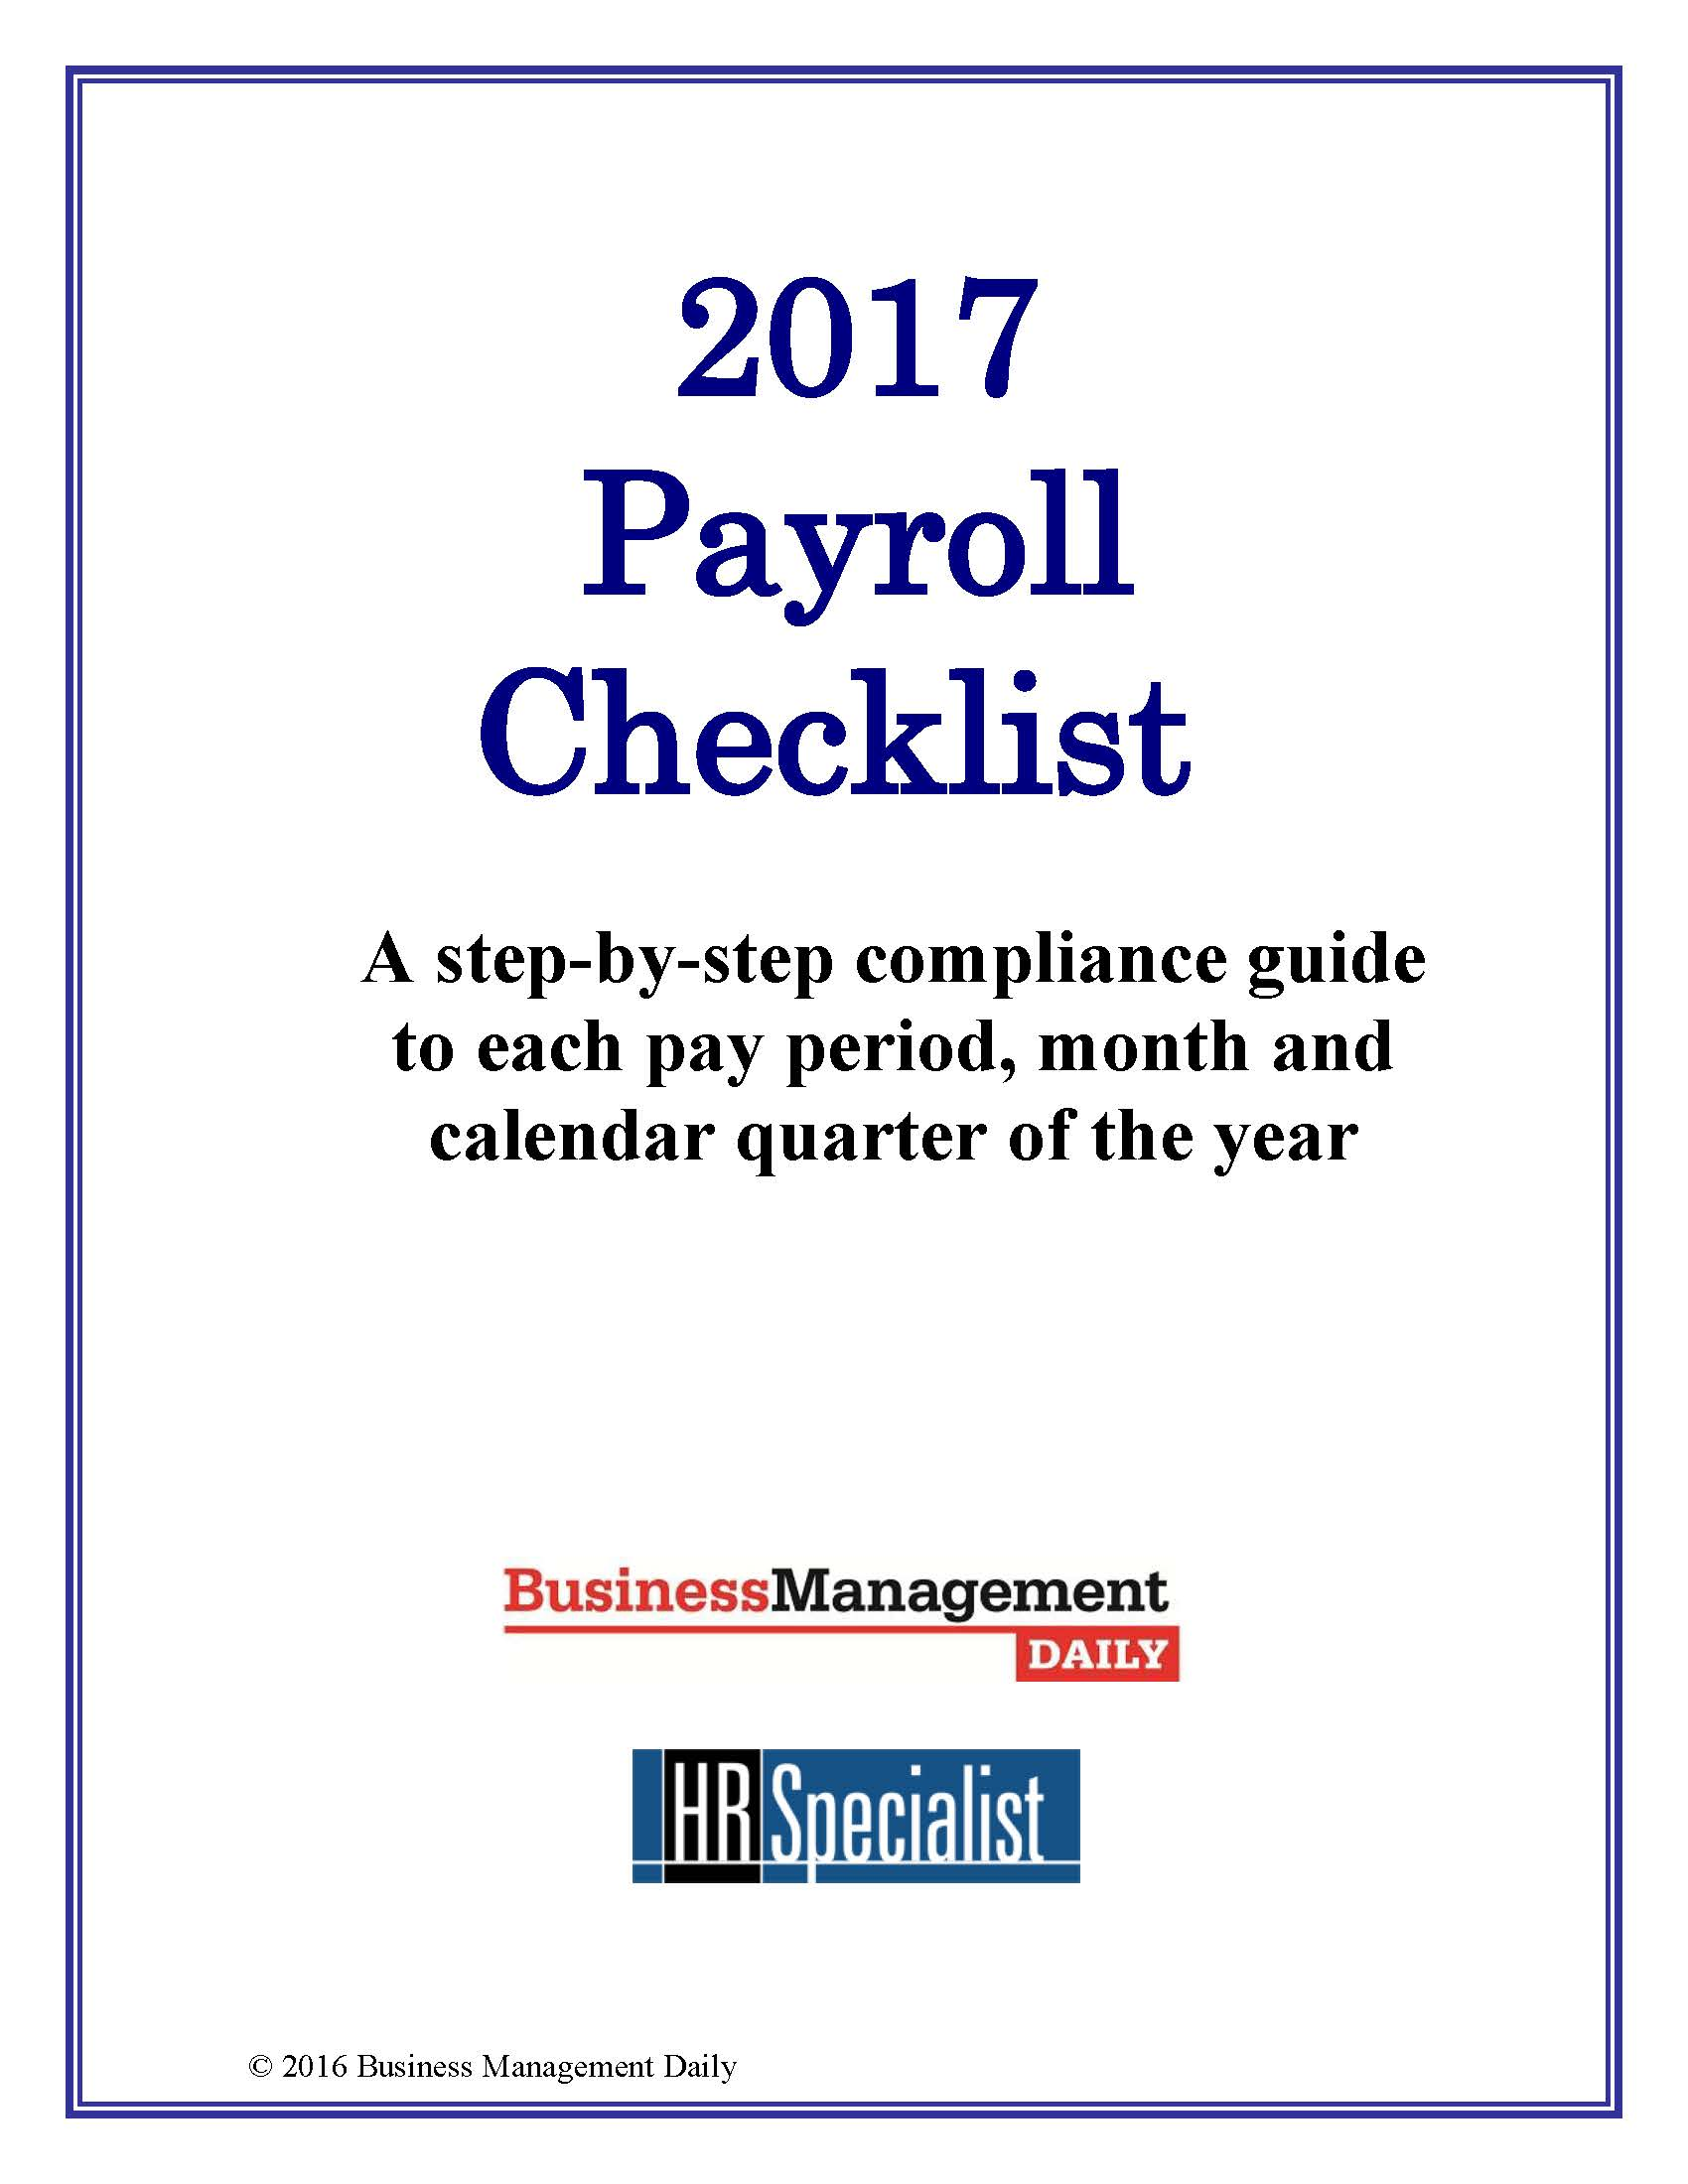 The 2017 Payroll Checklist